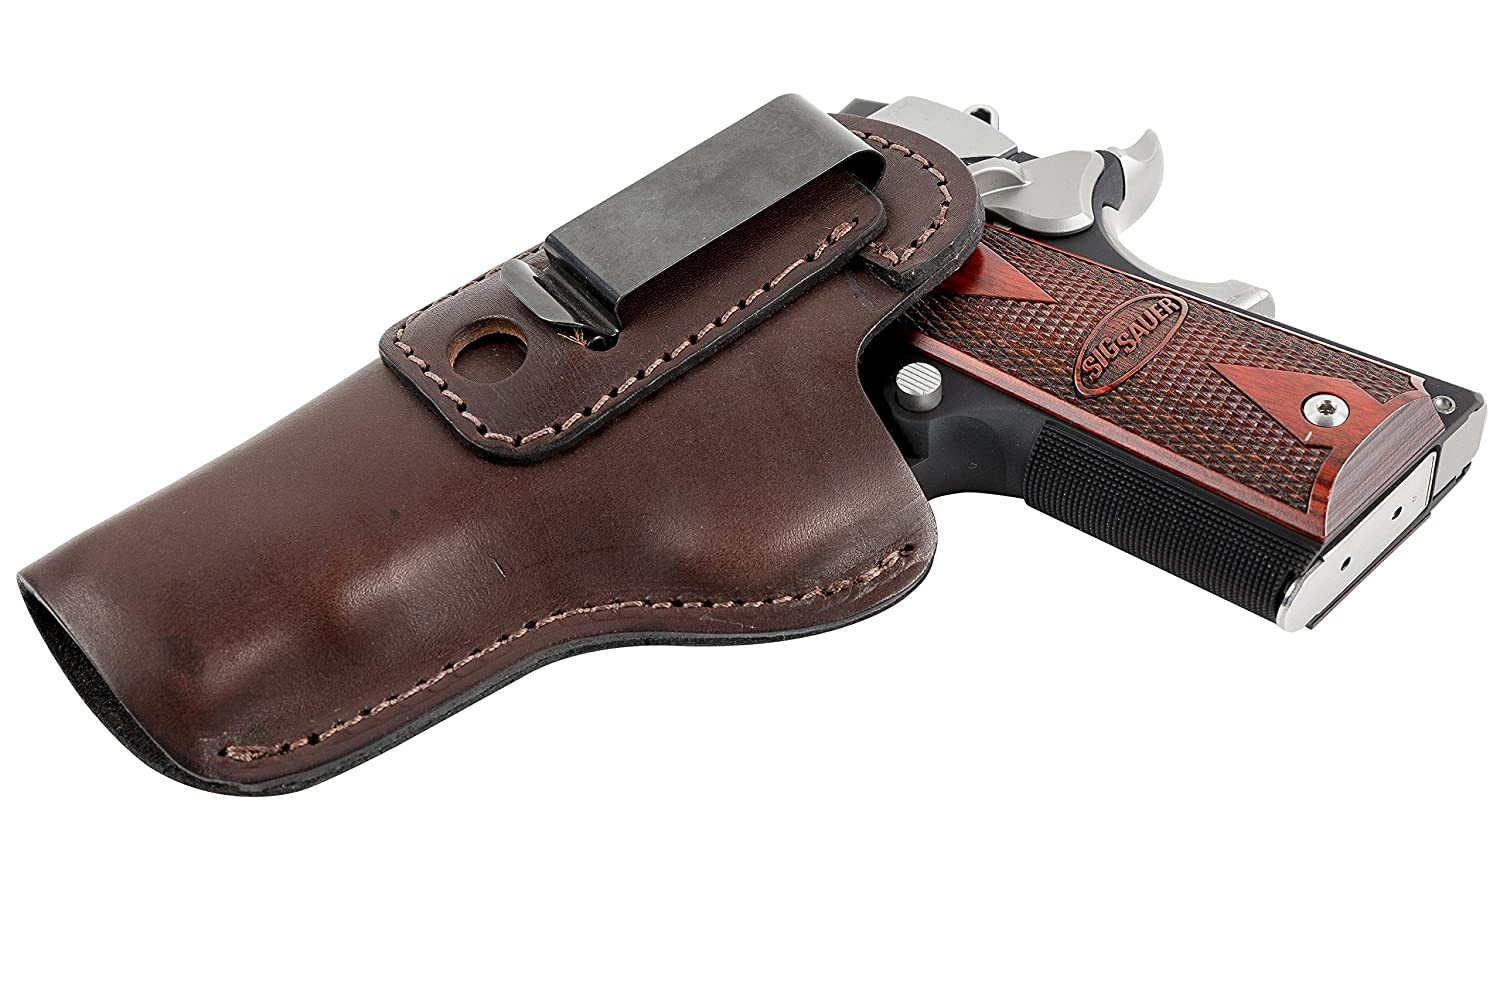 Relentless Tactical The Defender Leather IWB Holster - Fits Most 1911 Style Handguns - Kimber - Colt - S & W - Sig Sauer - Remington - Ruger & More - Made in USA